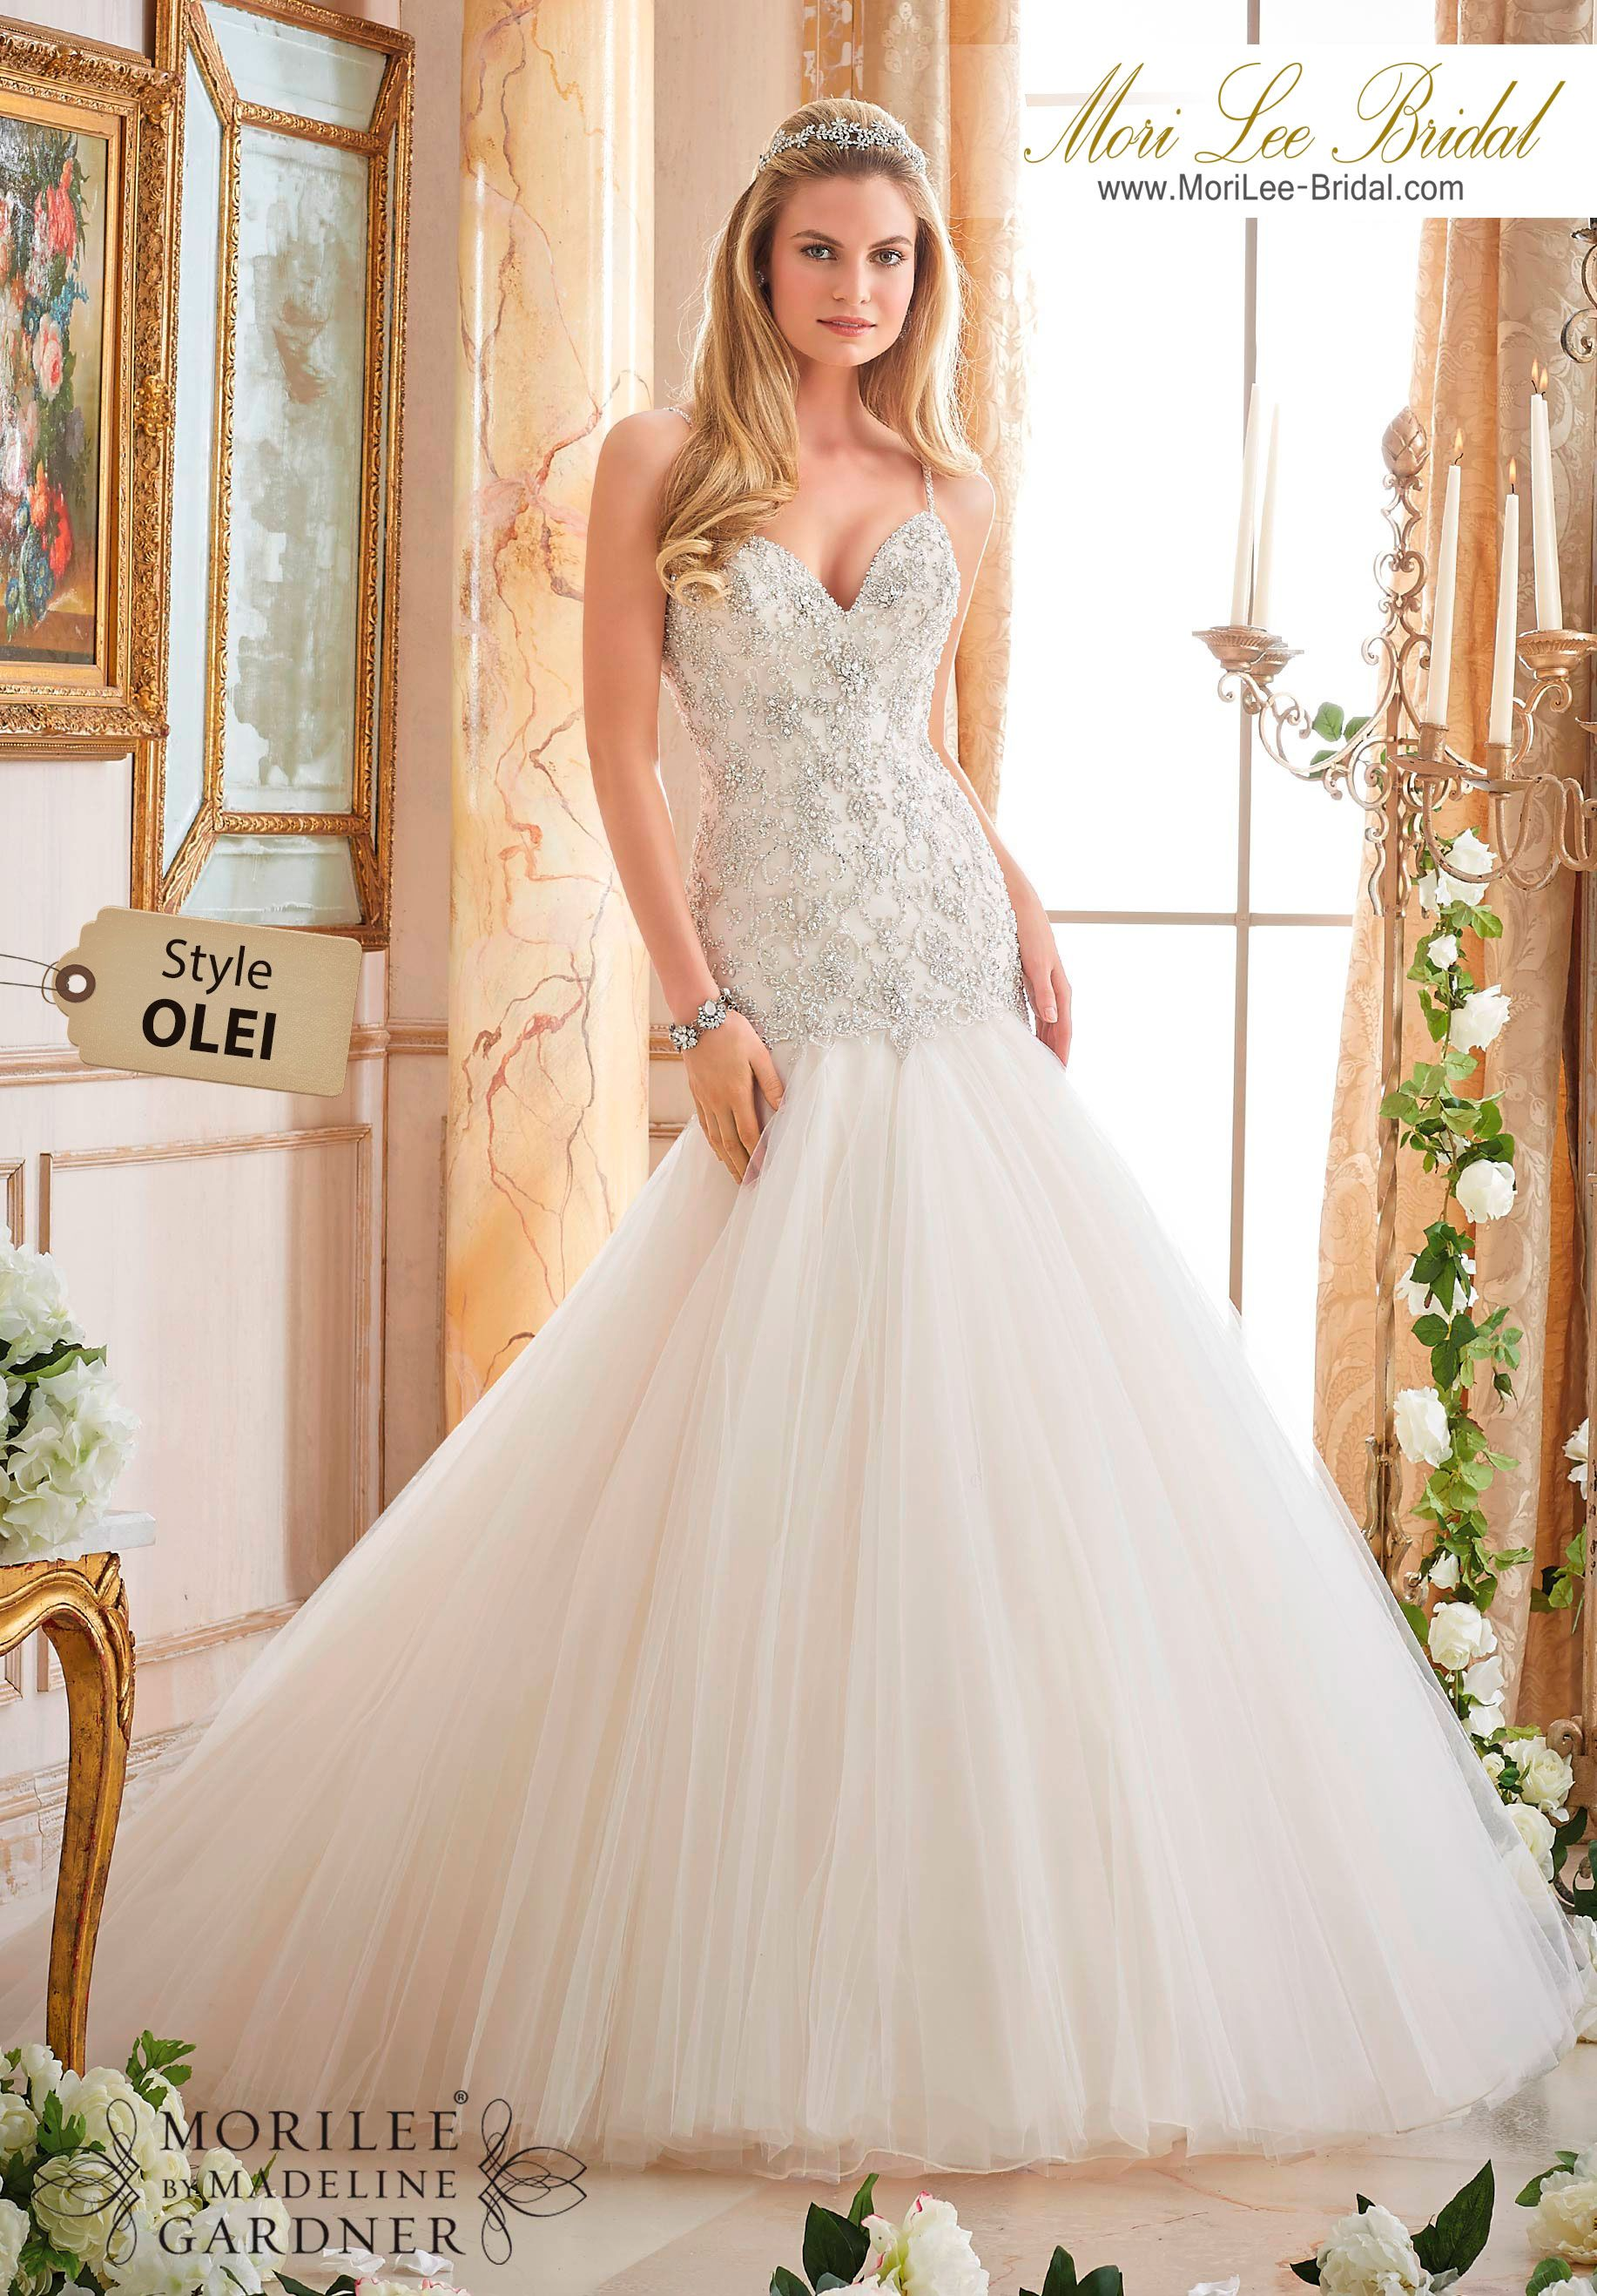 4a7da0712b773 Dress Style OLEI CRYSTALLIZED EMBROIDERY ON TULLE Colors Available:  White/Silver, Ivory/Silver, Light Gold/Silver